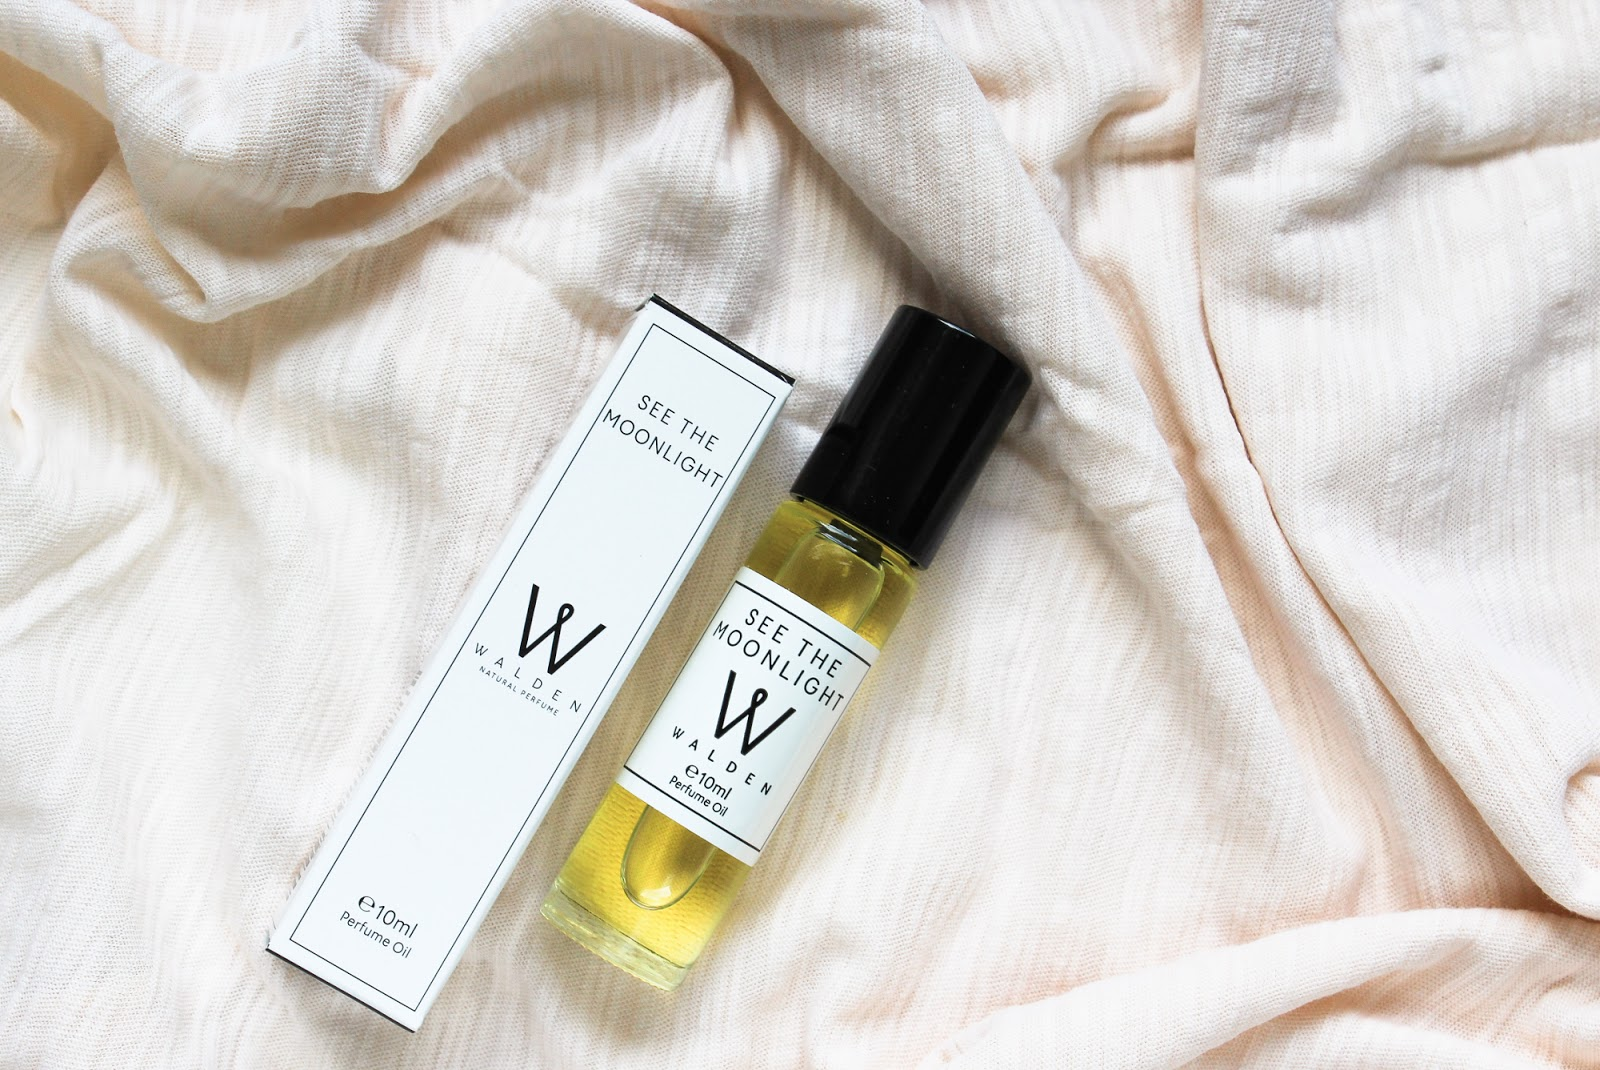 Walden Natural Perfume See the Moonlight Perfume Oil Roll On. Love Lula